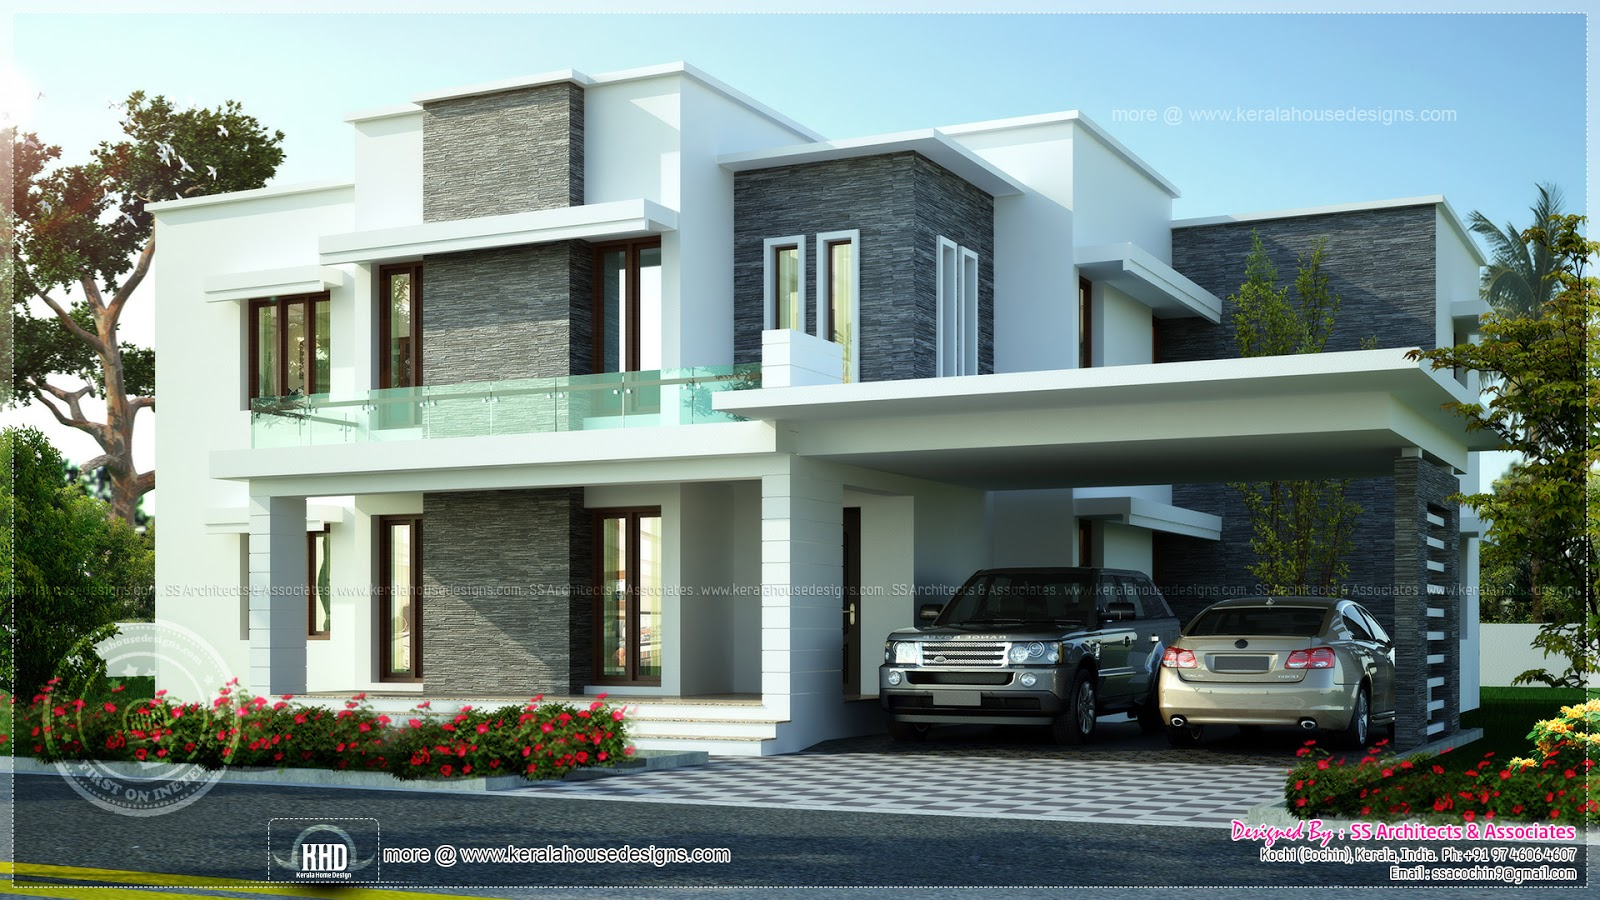 3600 sq ft contemporary villa exterior elevation kerala for House designs 950 sq ft